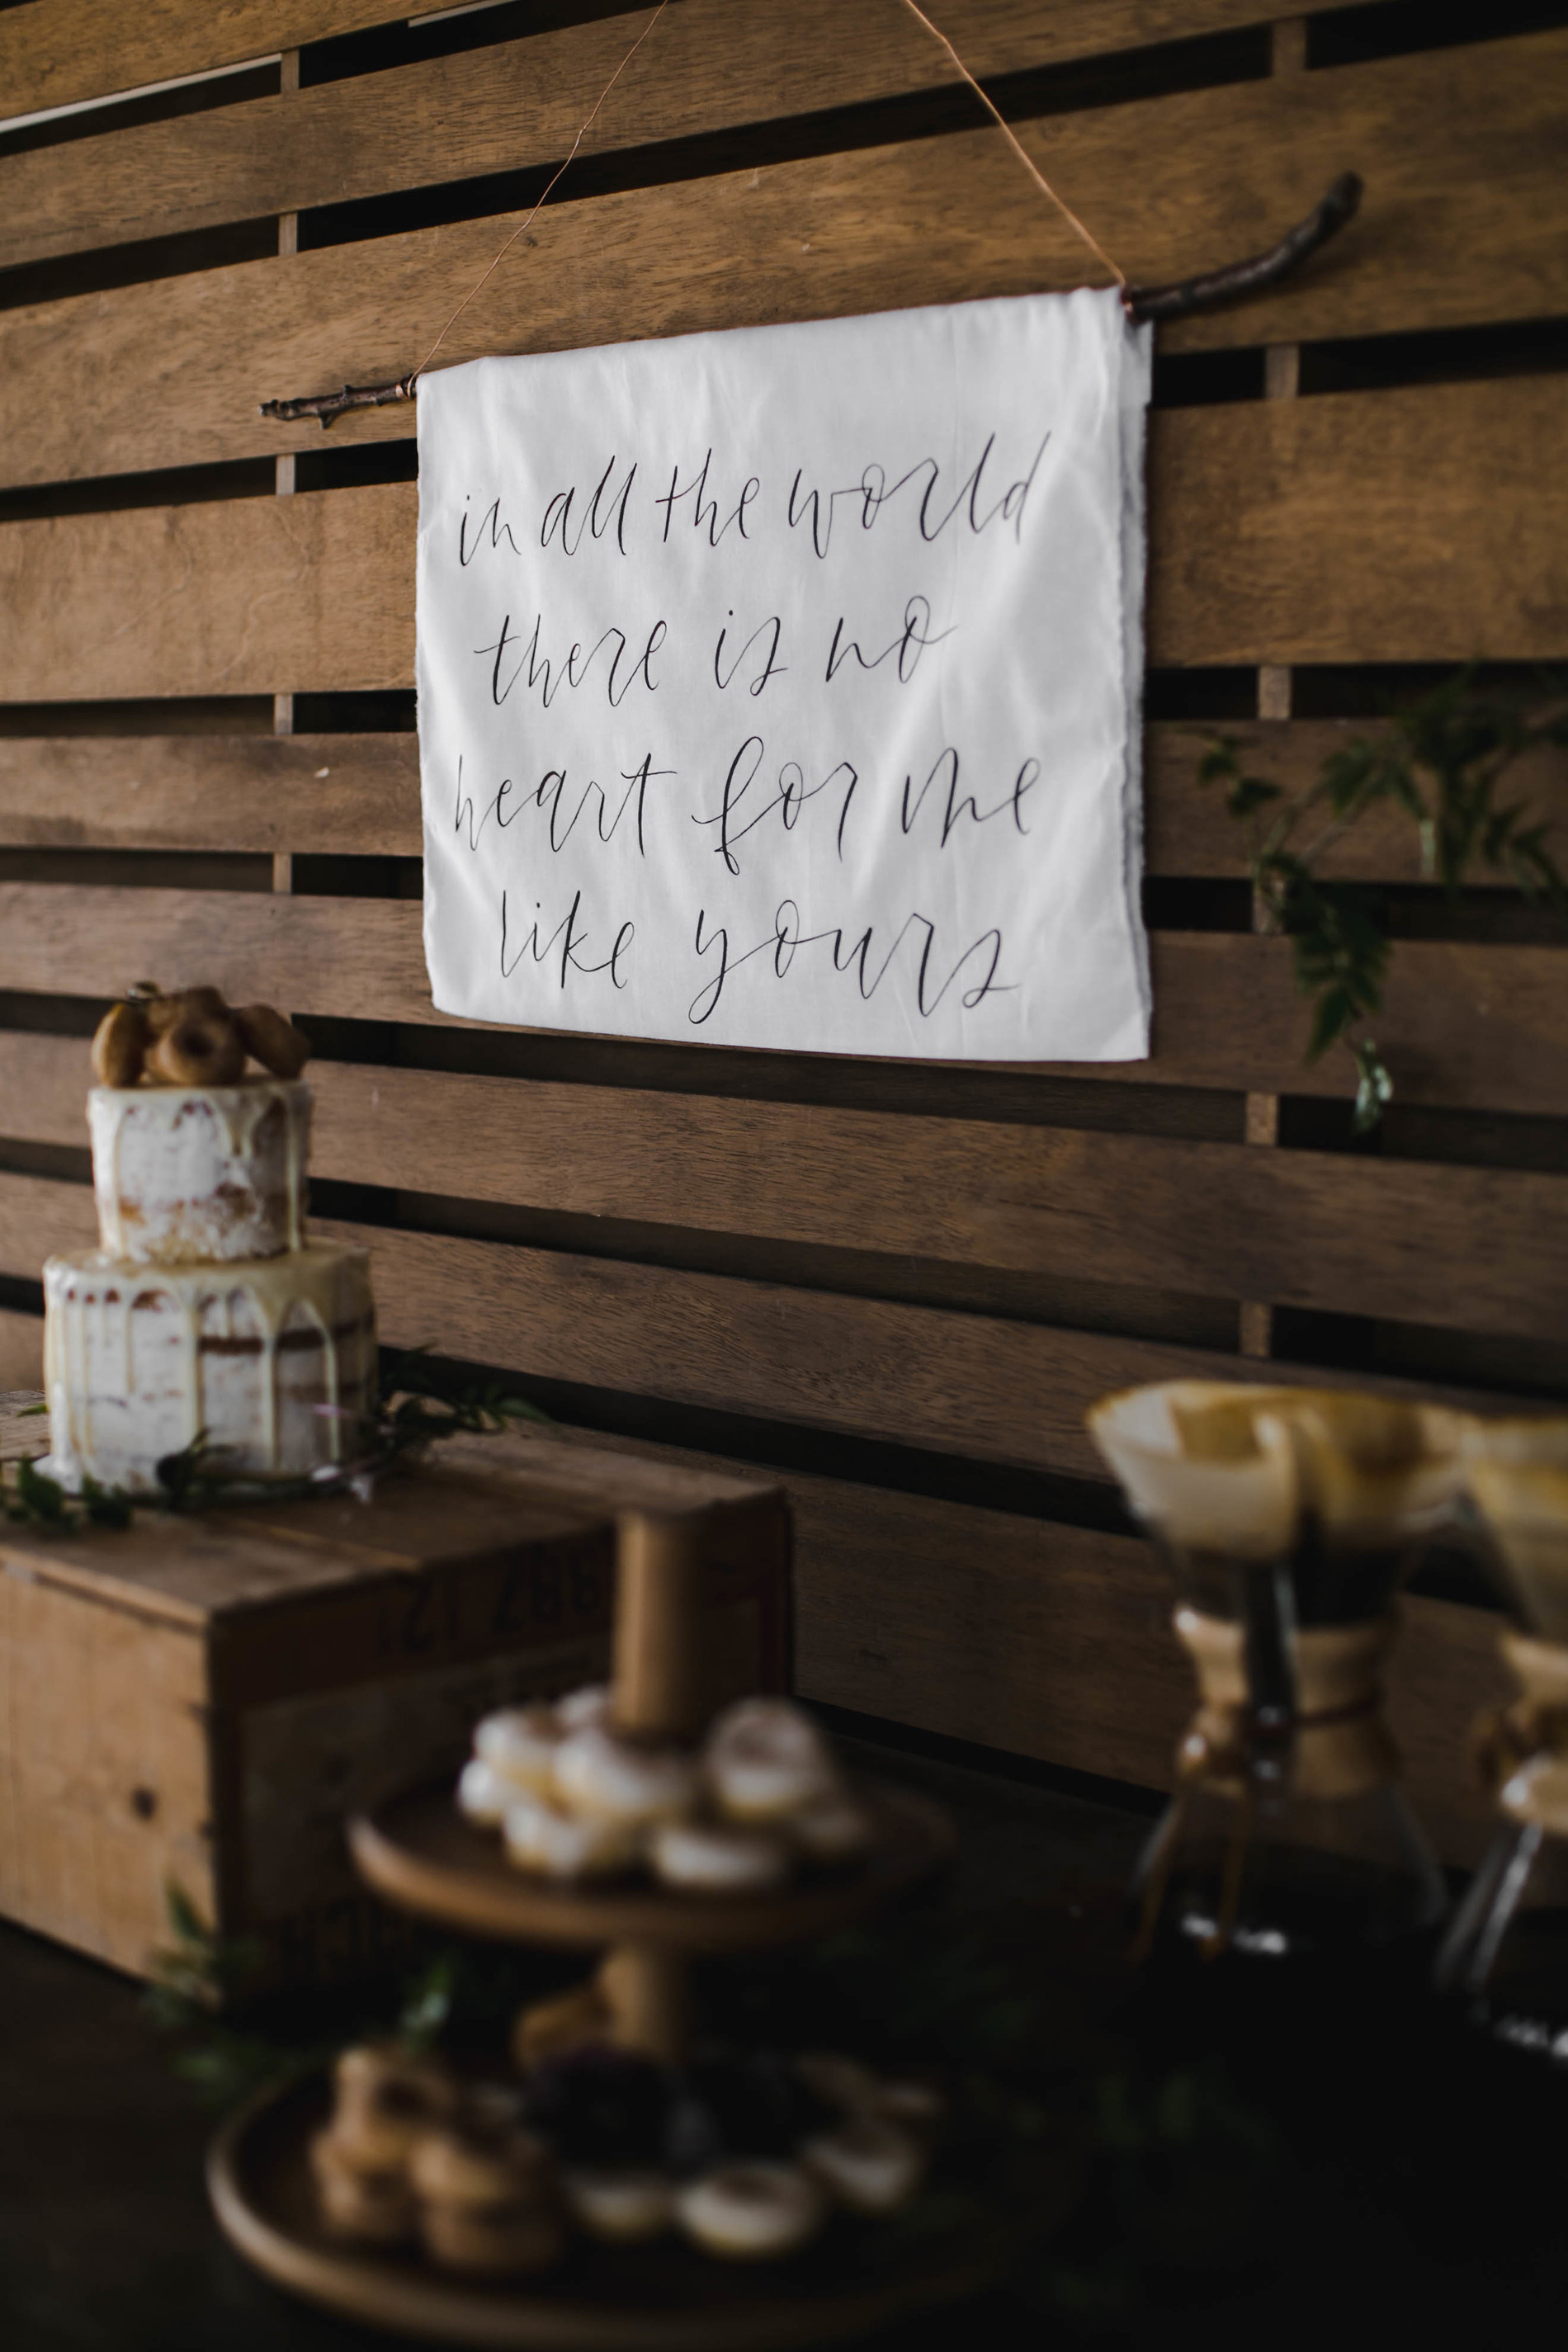 Photo by Melody Joy Co, Styling by All Dei Events, Desserts by Love Sugar & Grace, Calligraphy by Grace Niu Design